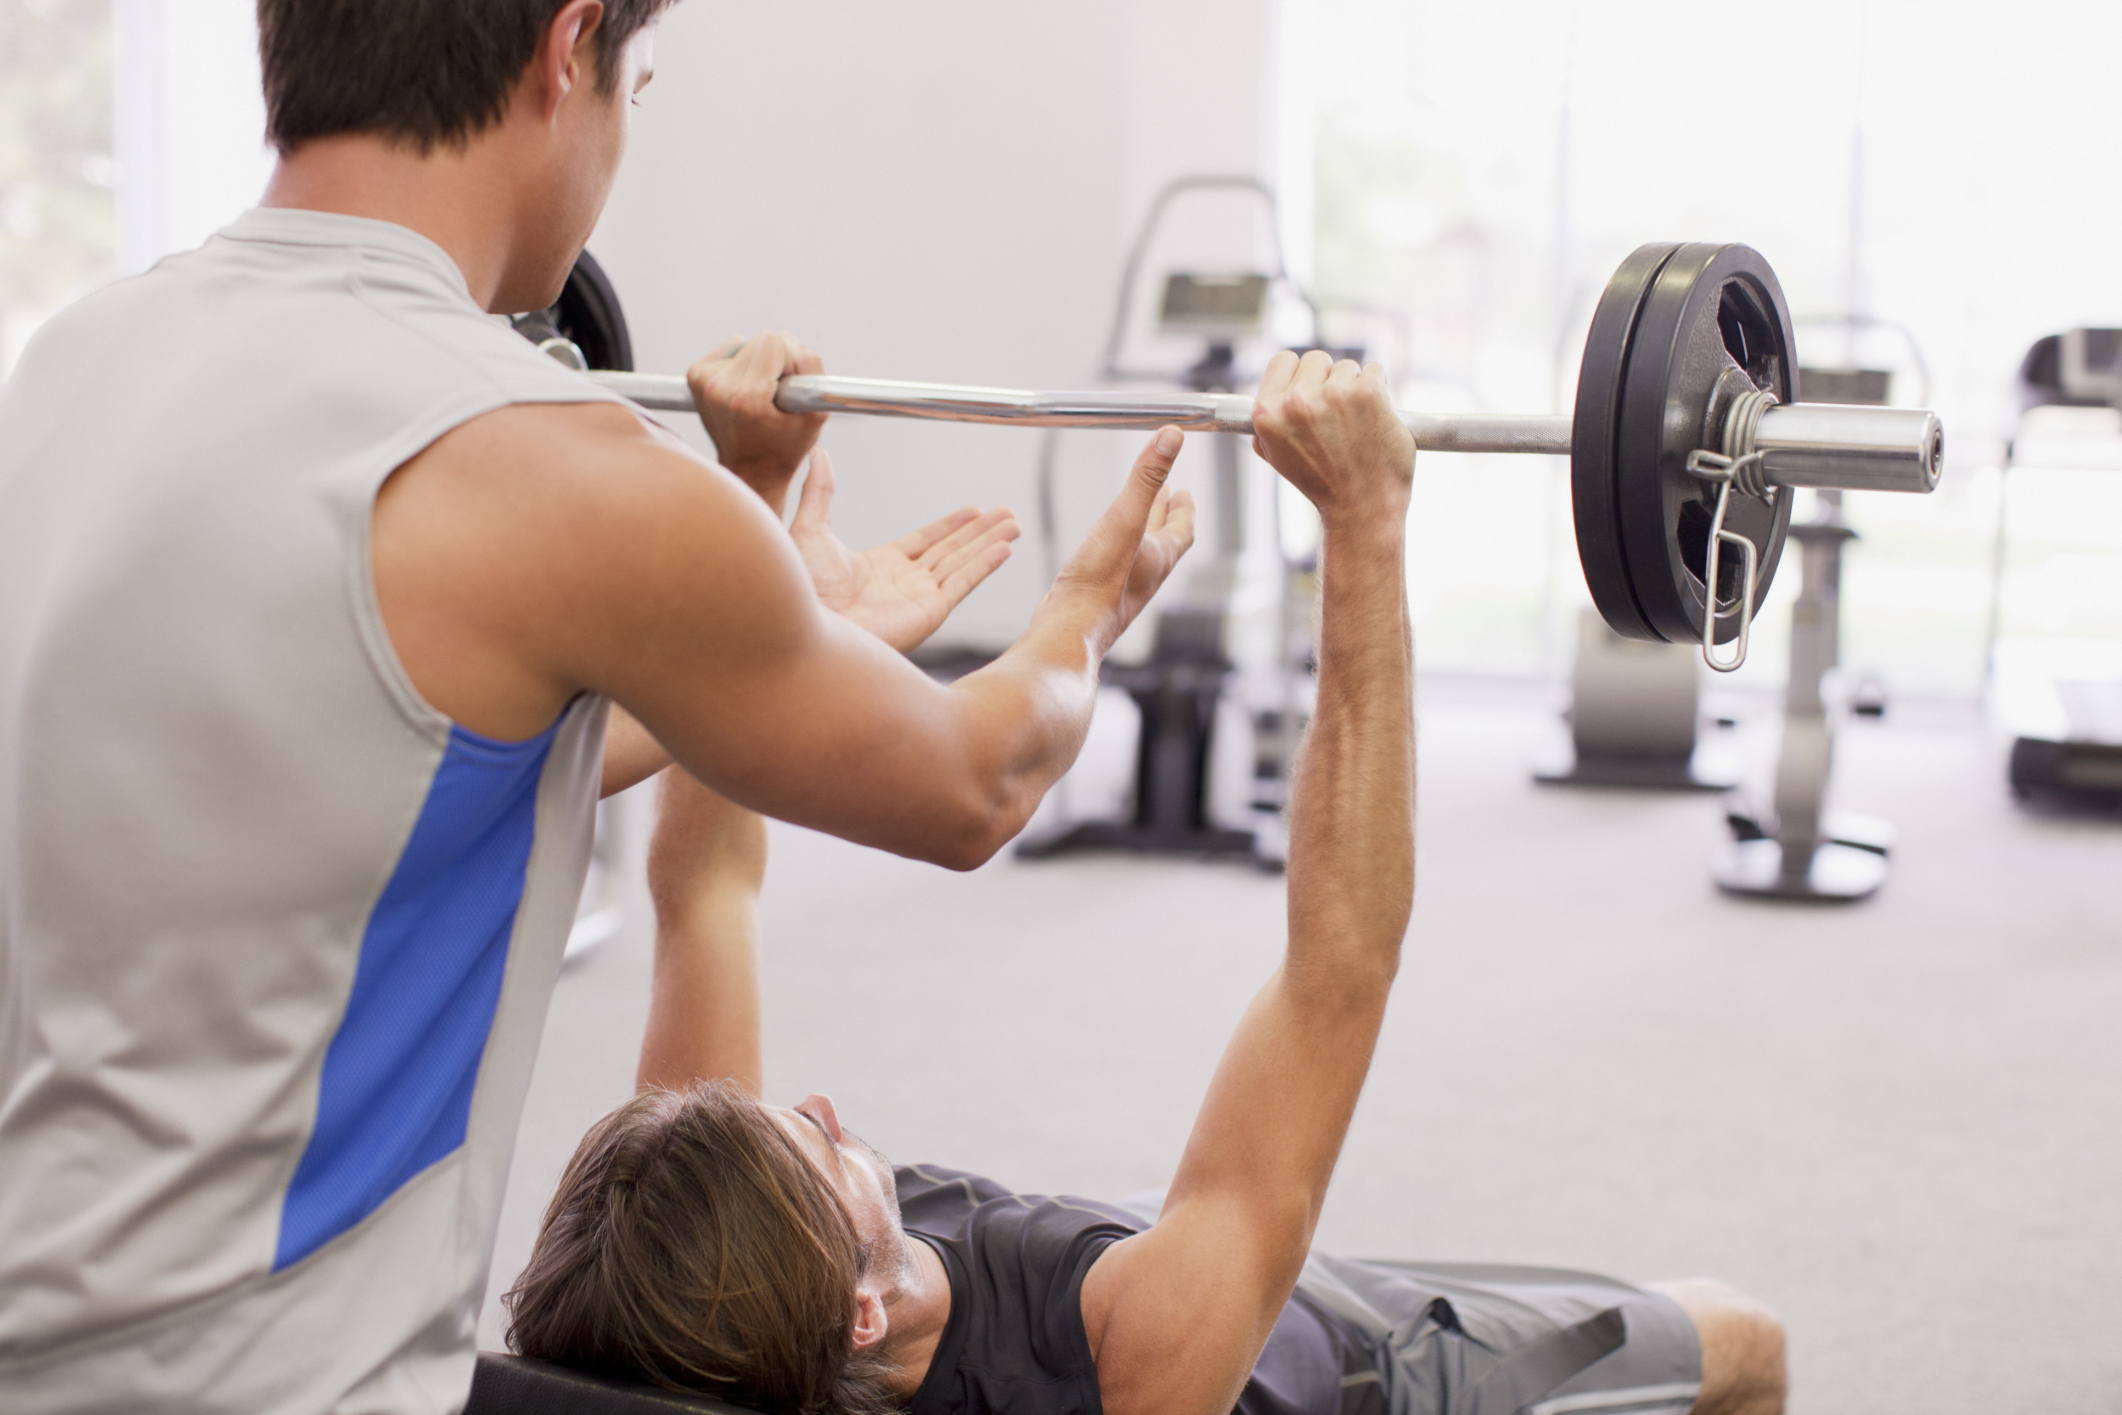 How to Increase Bench Press Weight by 20 Pounds Per Month